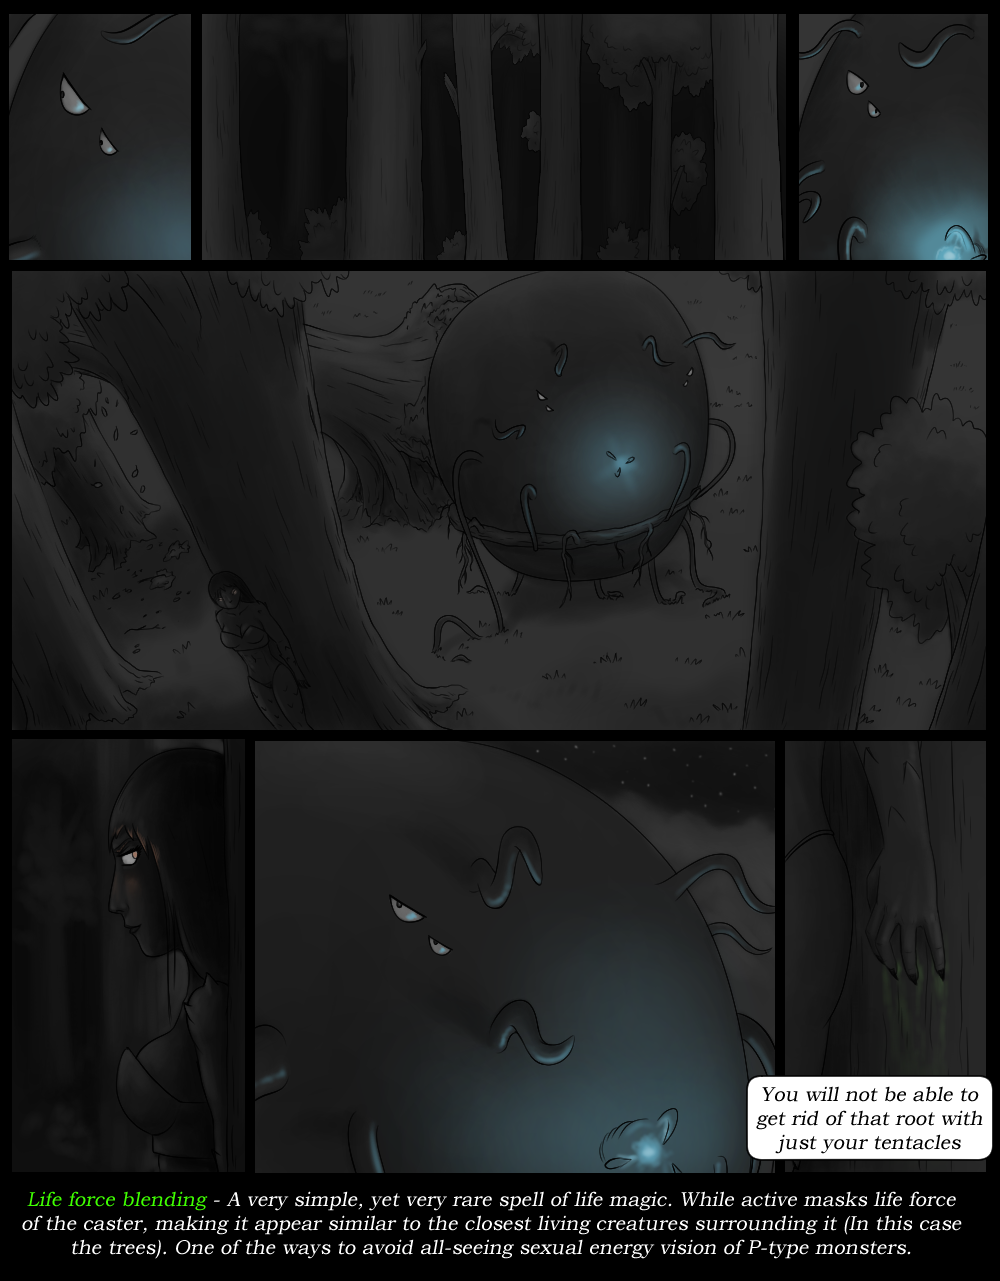 Page 91 - Battle against Glowslimer (Part 38)